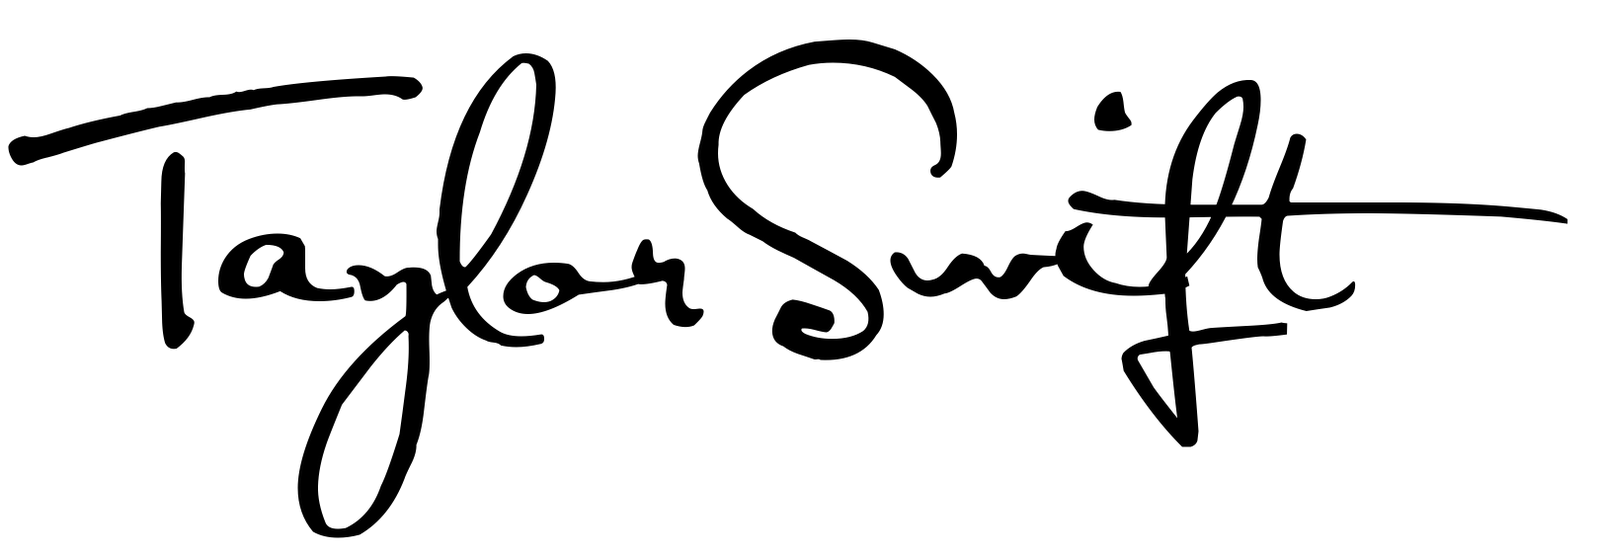 파일:Taylor_swift_signature.png